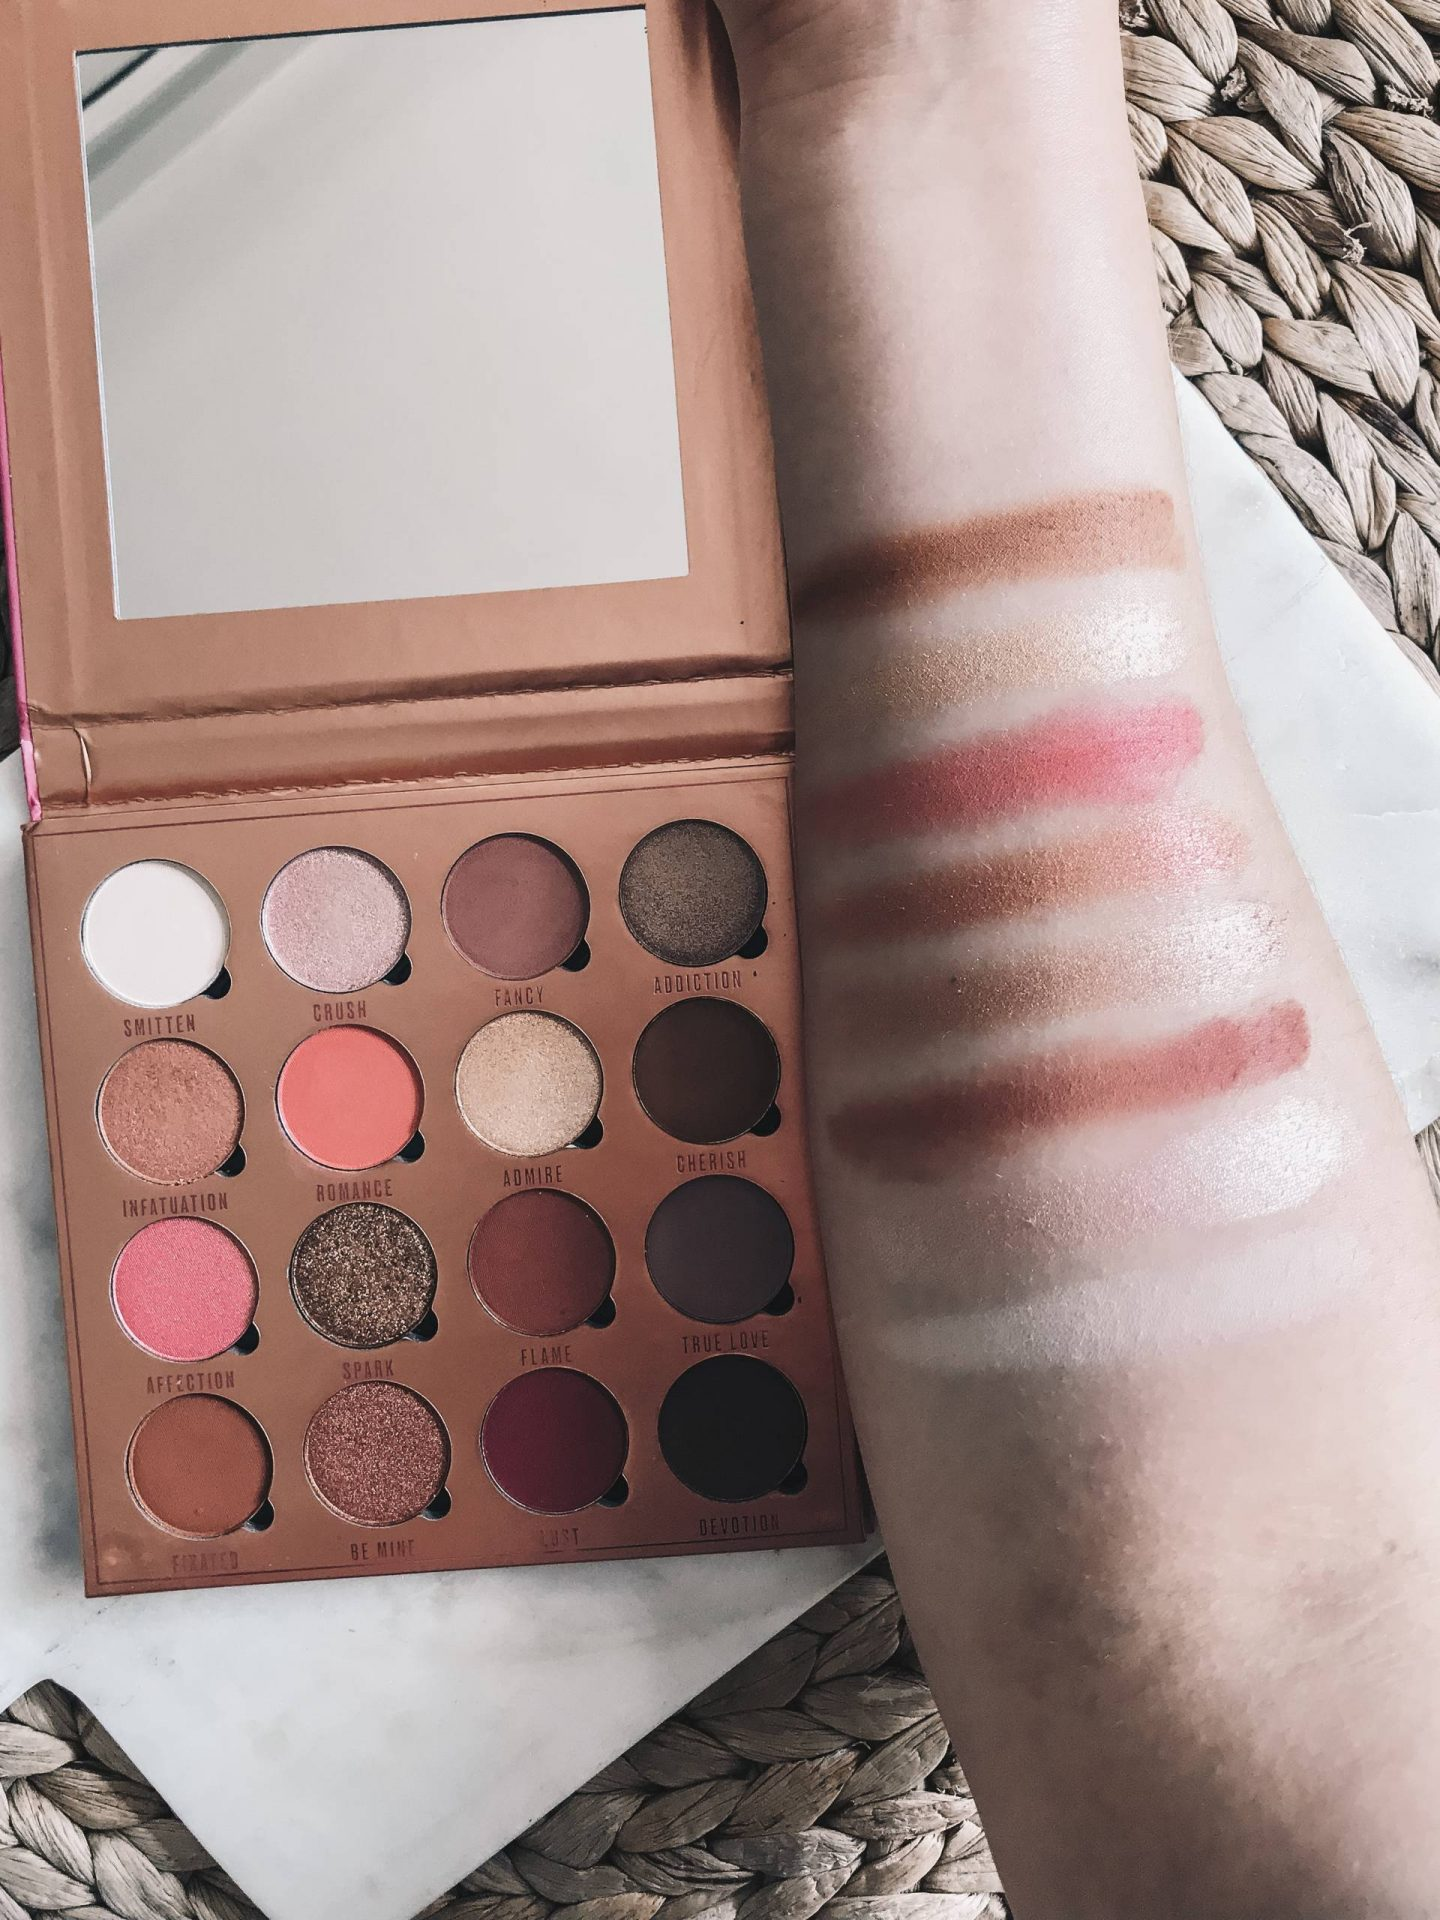 Makeup Obsession Love Is My Drug swatches